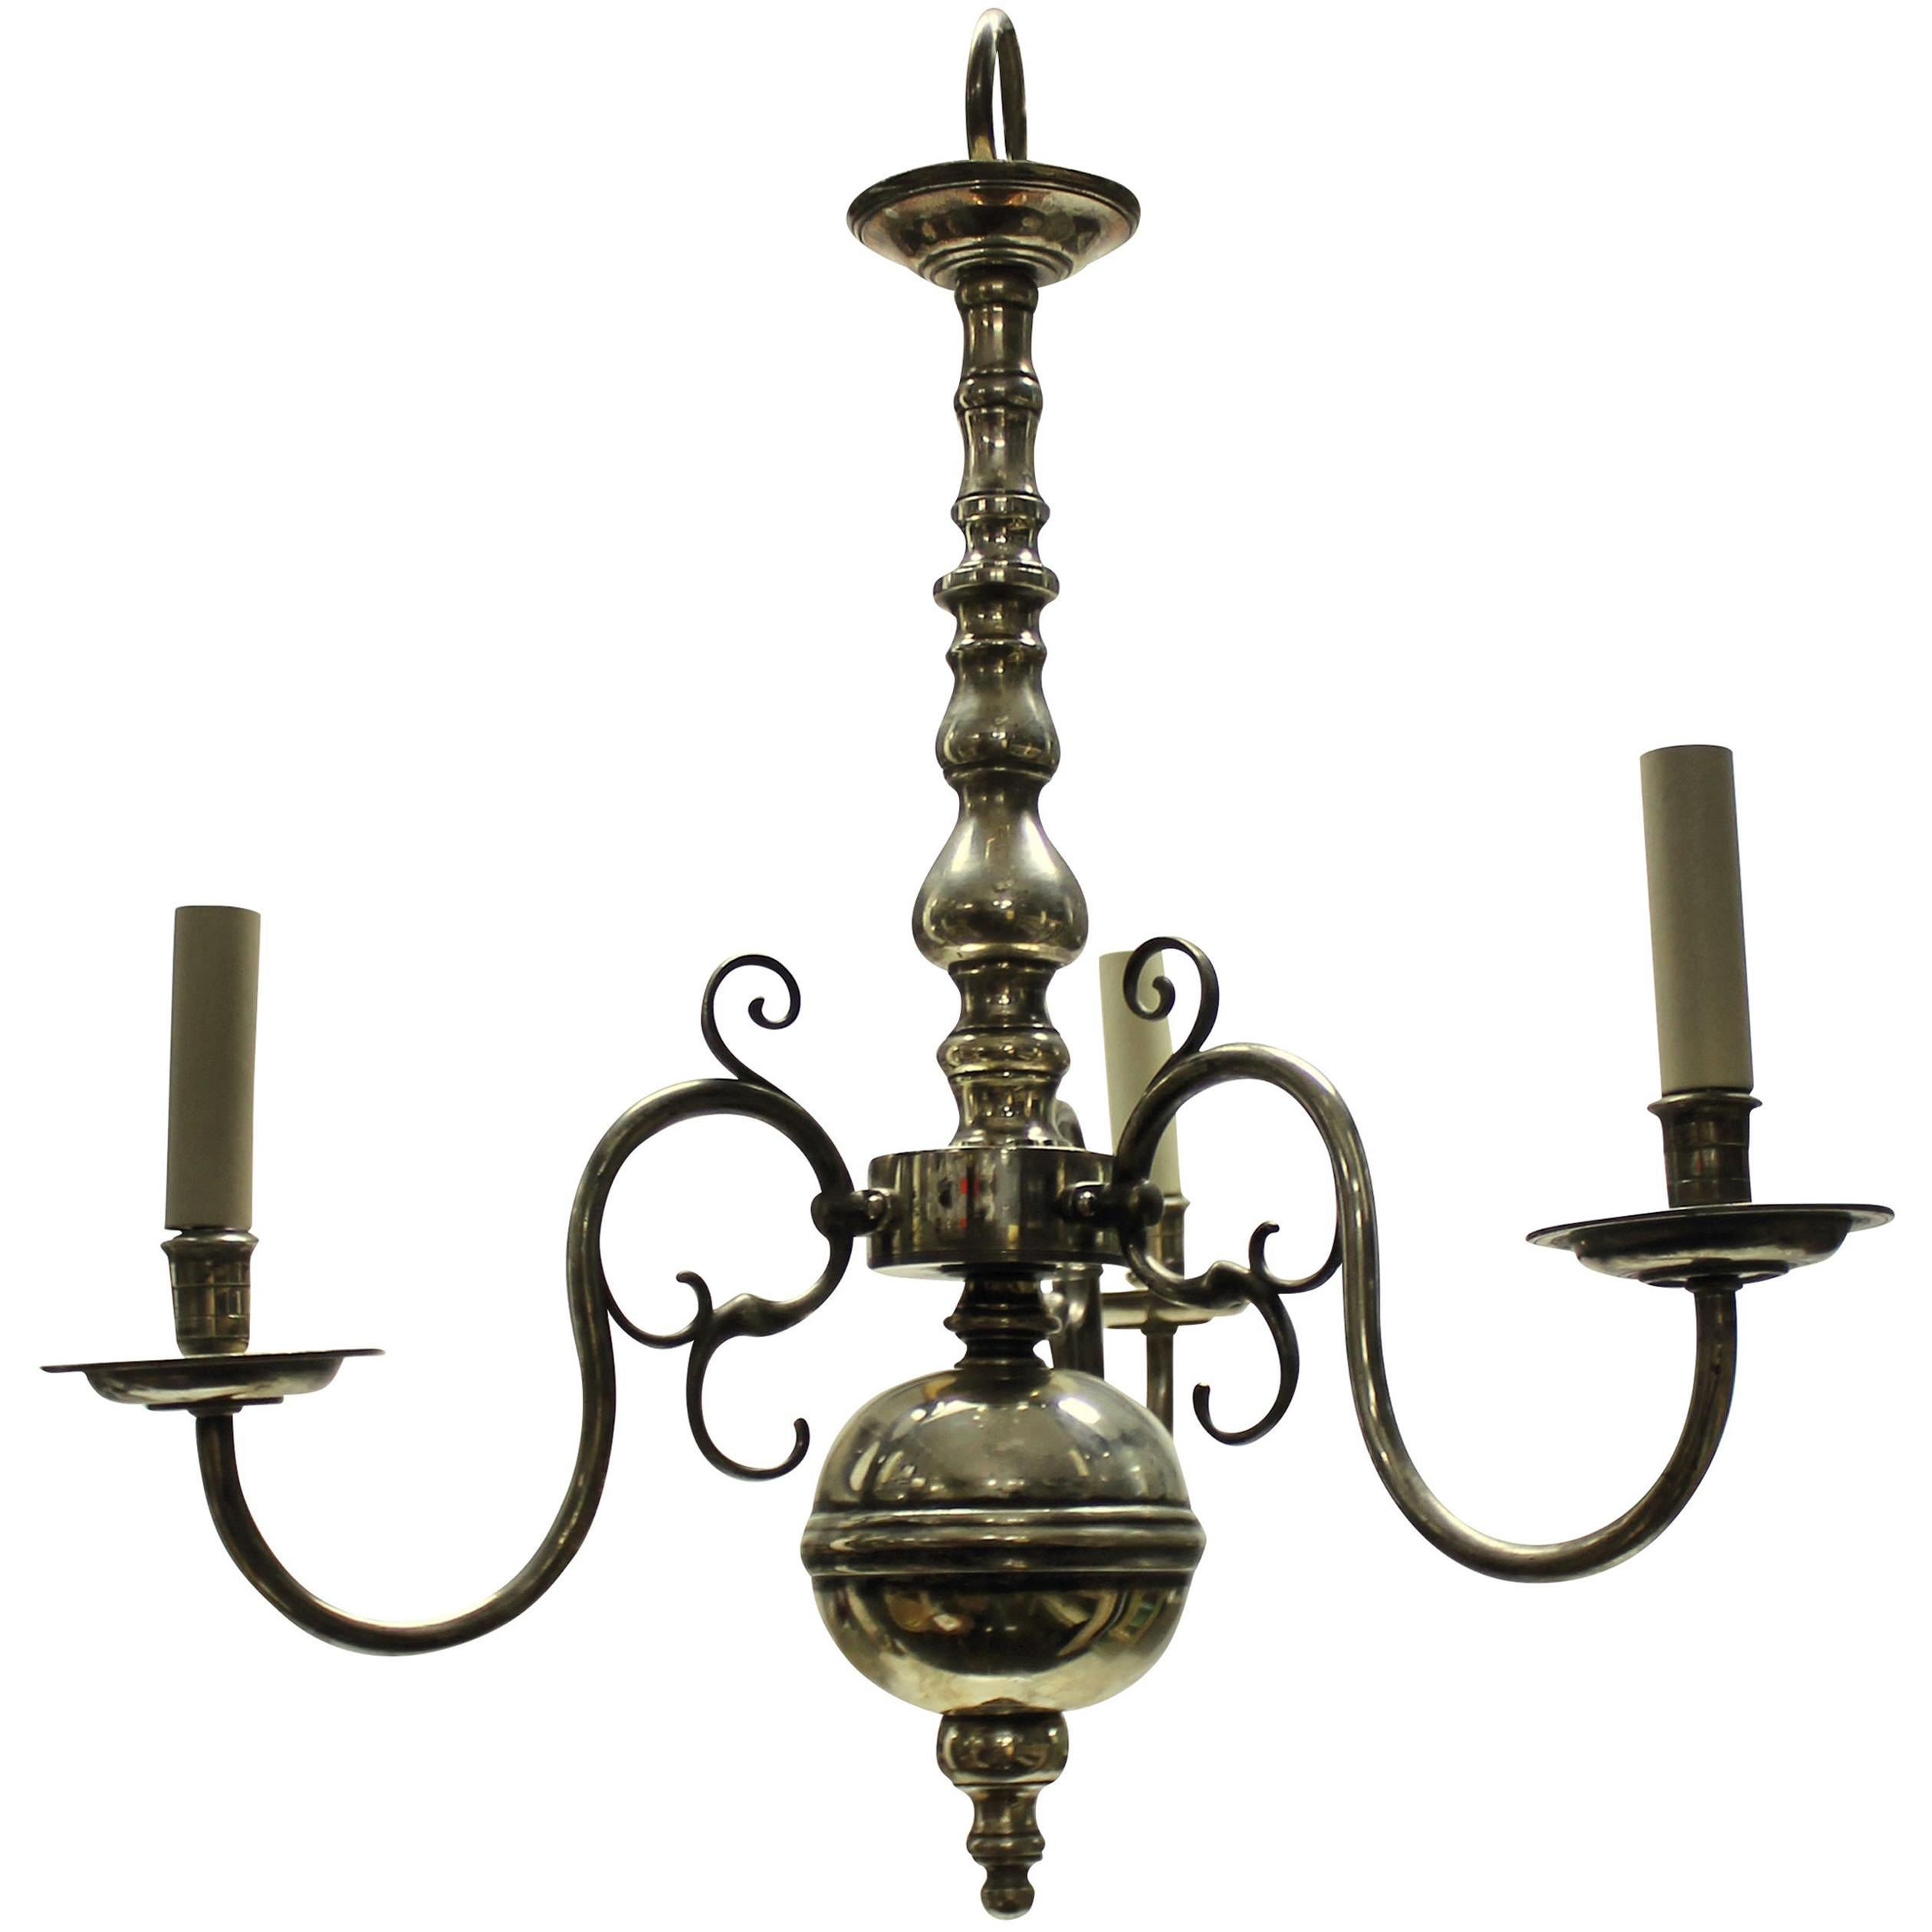 English Silver Plated Three Branch Chandelier